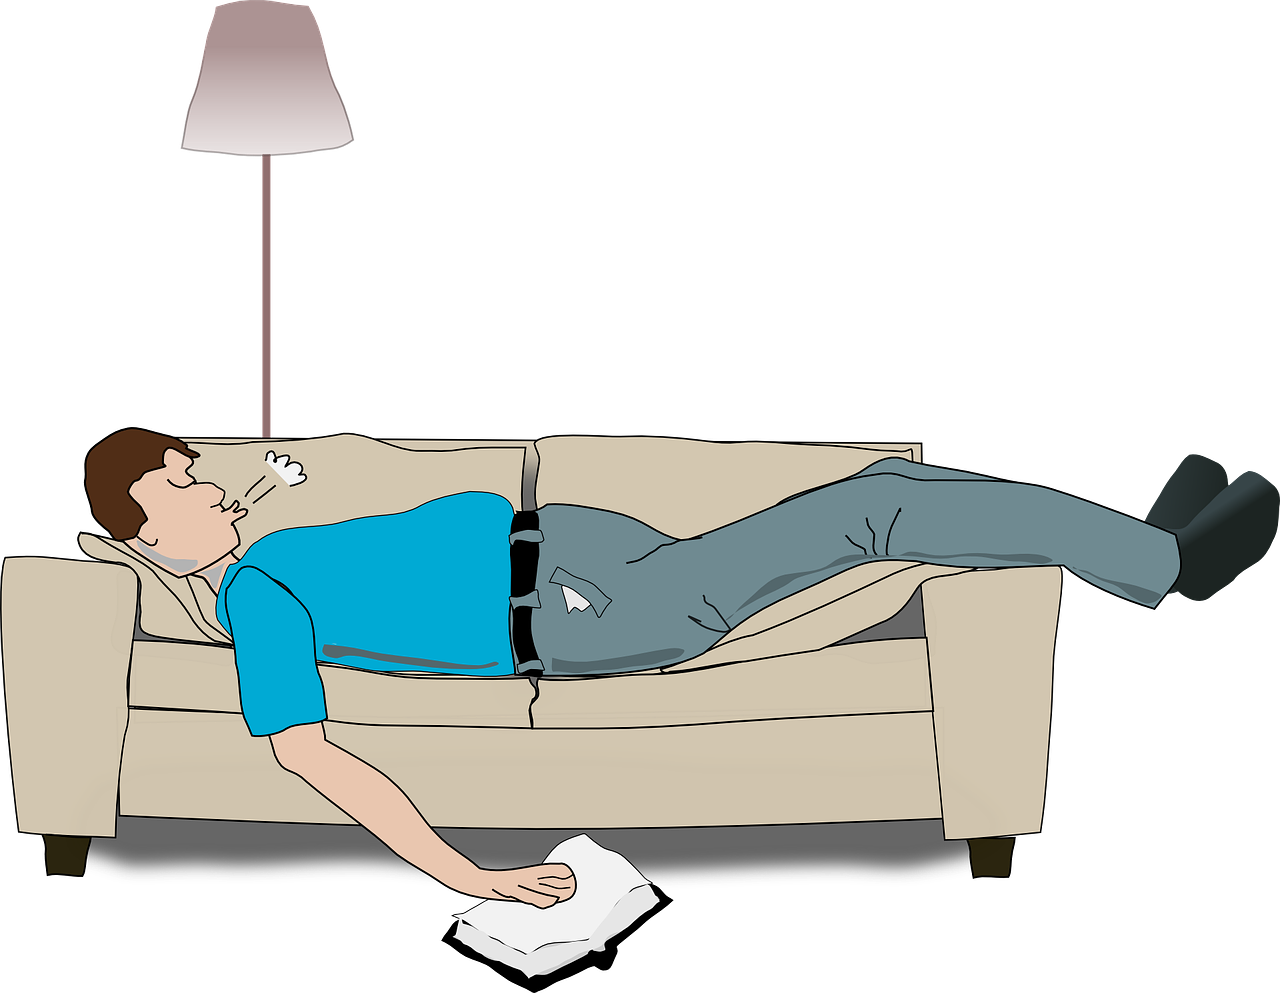 Image result for a man lieing on bed animated""